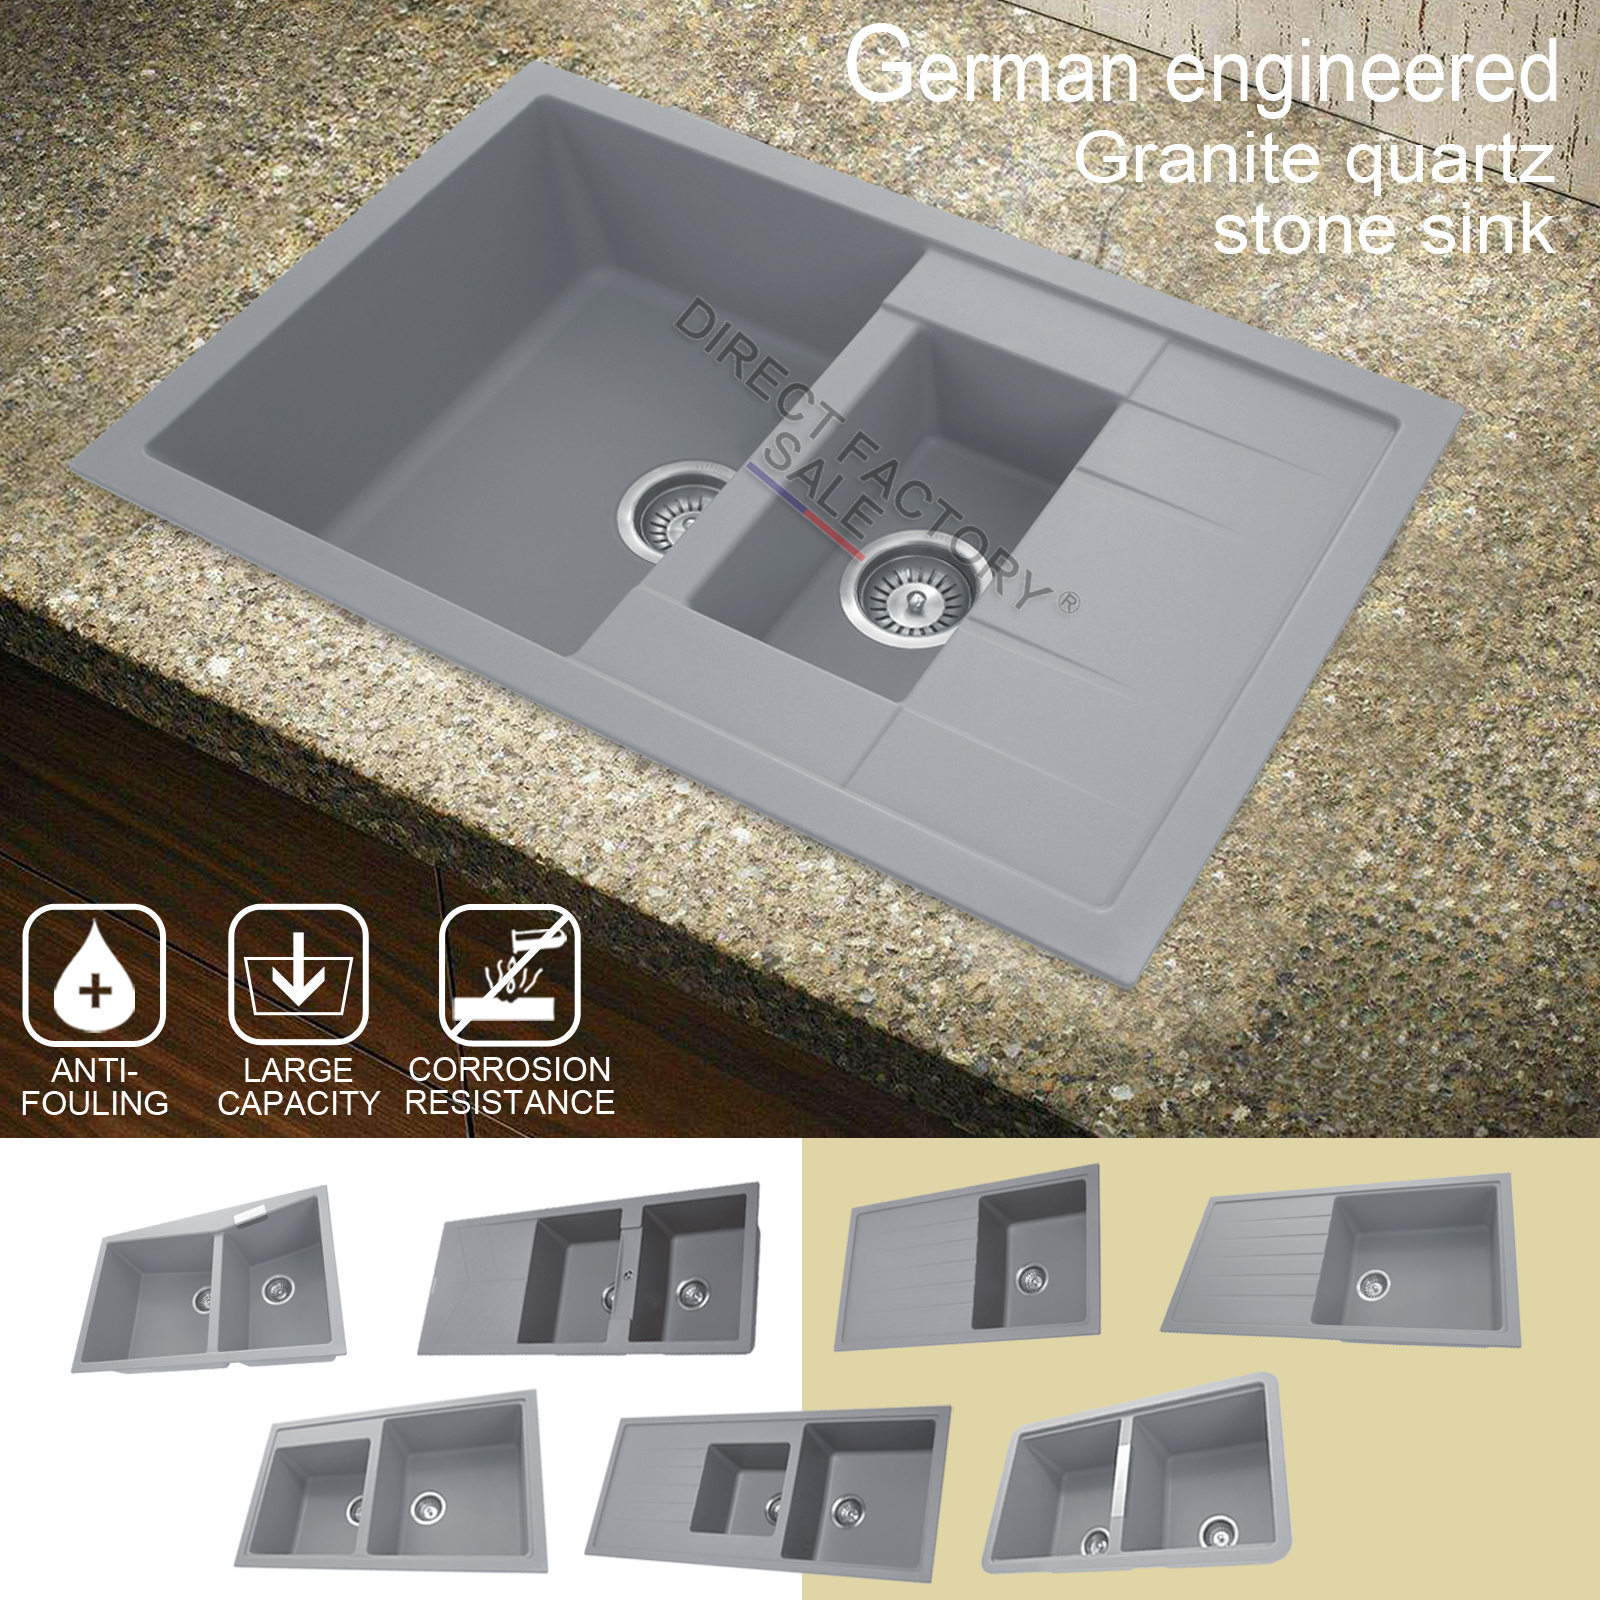 Details about concrete grey granite stone single double bowl drainboard kitchen sink overflow